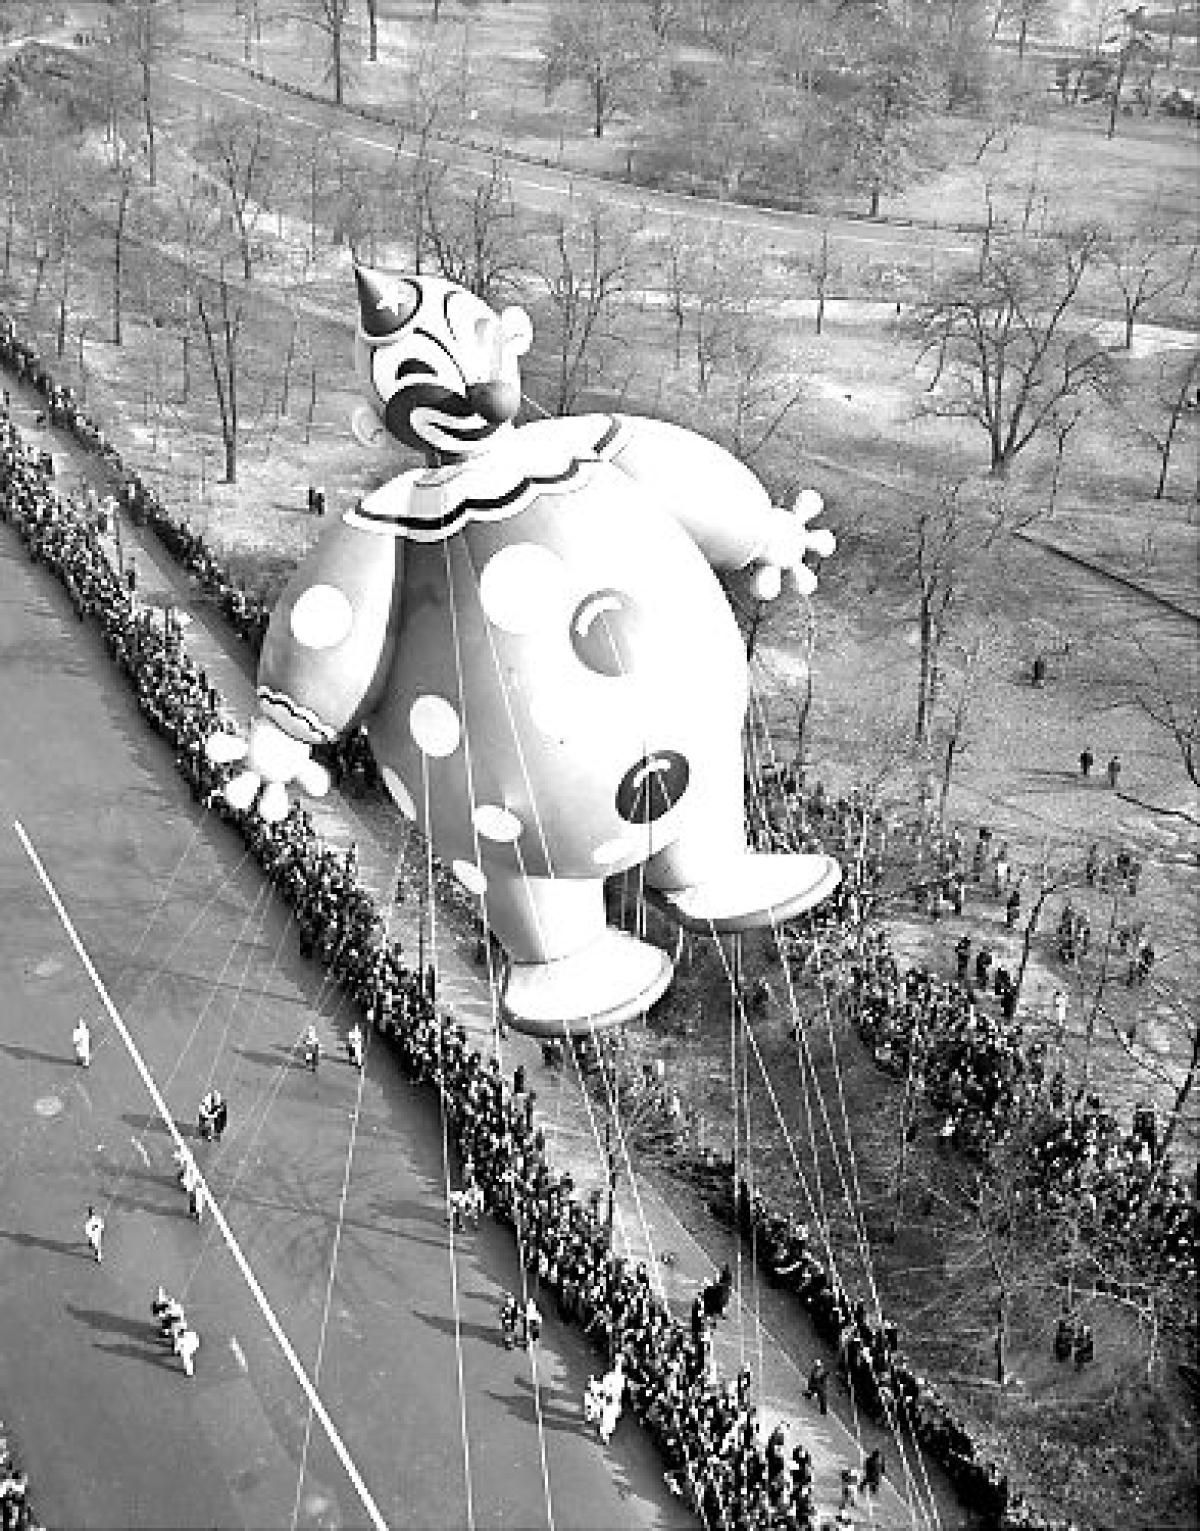 He Was 46 Feet Tall And All Gas Helium That Is This Overwhelming Gent Floating Macys Thanksgiving Parade Thanksgiving Parade Macy S Thanksgiving Day Parade